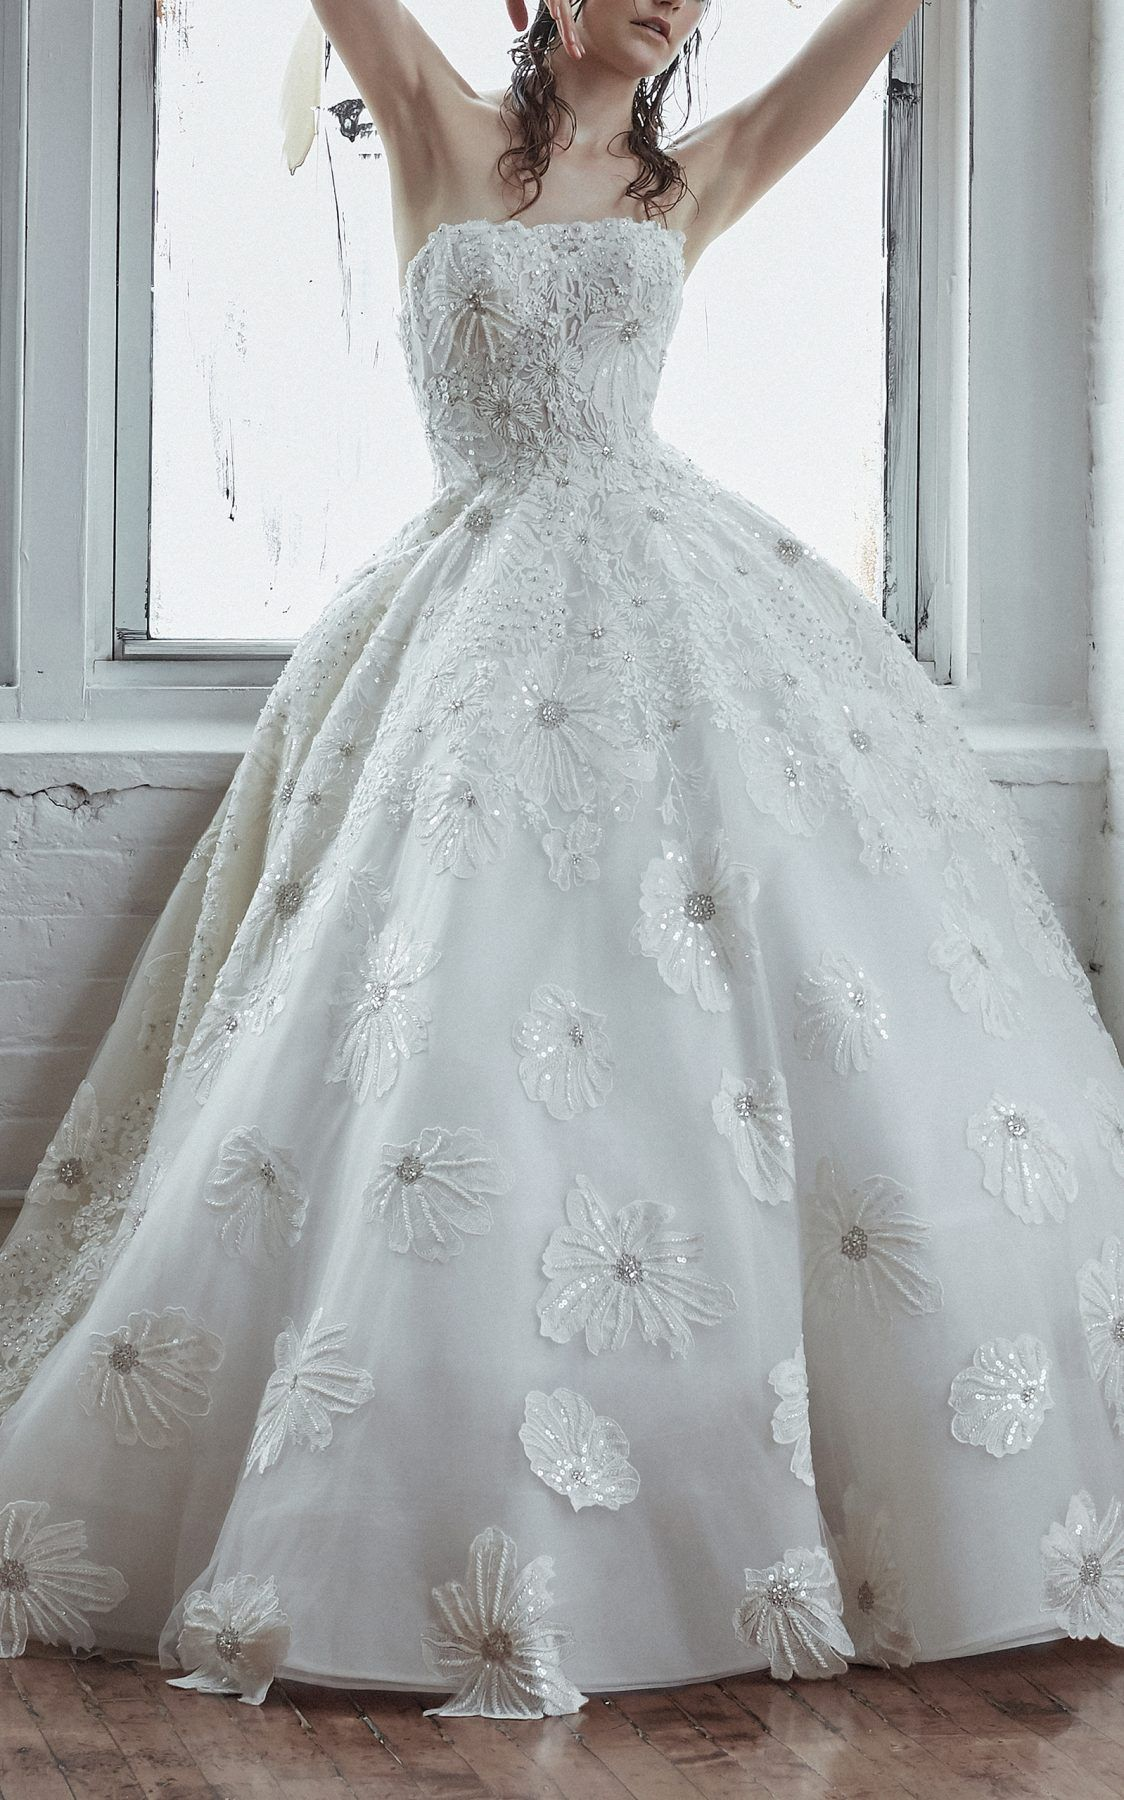 Strapless Ball Gown With Beaded Floral Embroidery Isabelle Armstrong Style Anastasia Wedding Dress Couture Gowns Ball Gowns